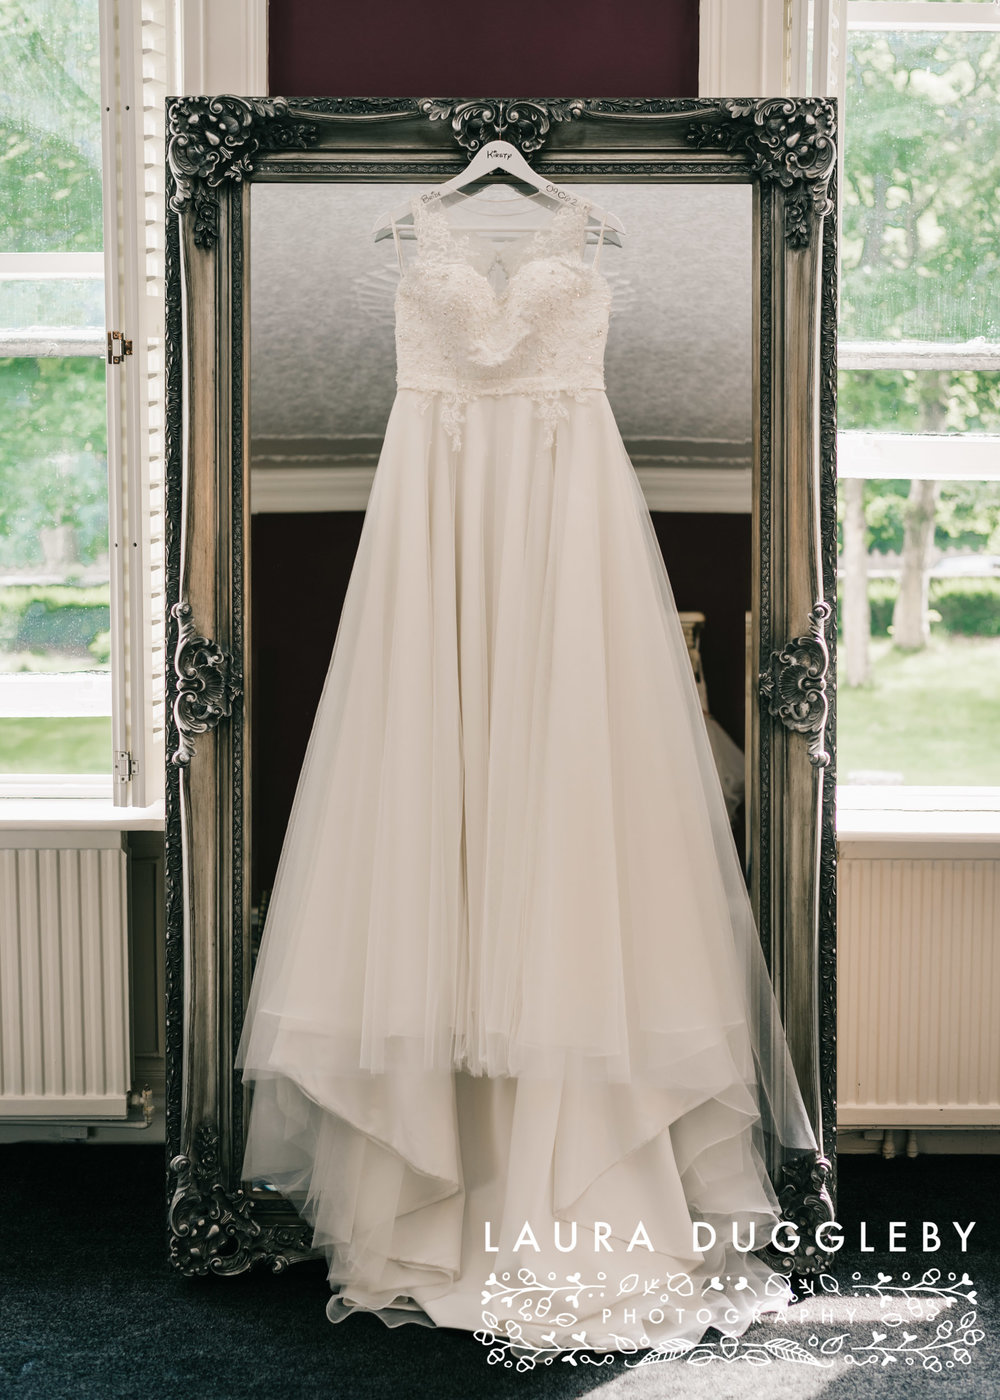 Sparth House Wedding - Lancashire Wedding Photographer2